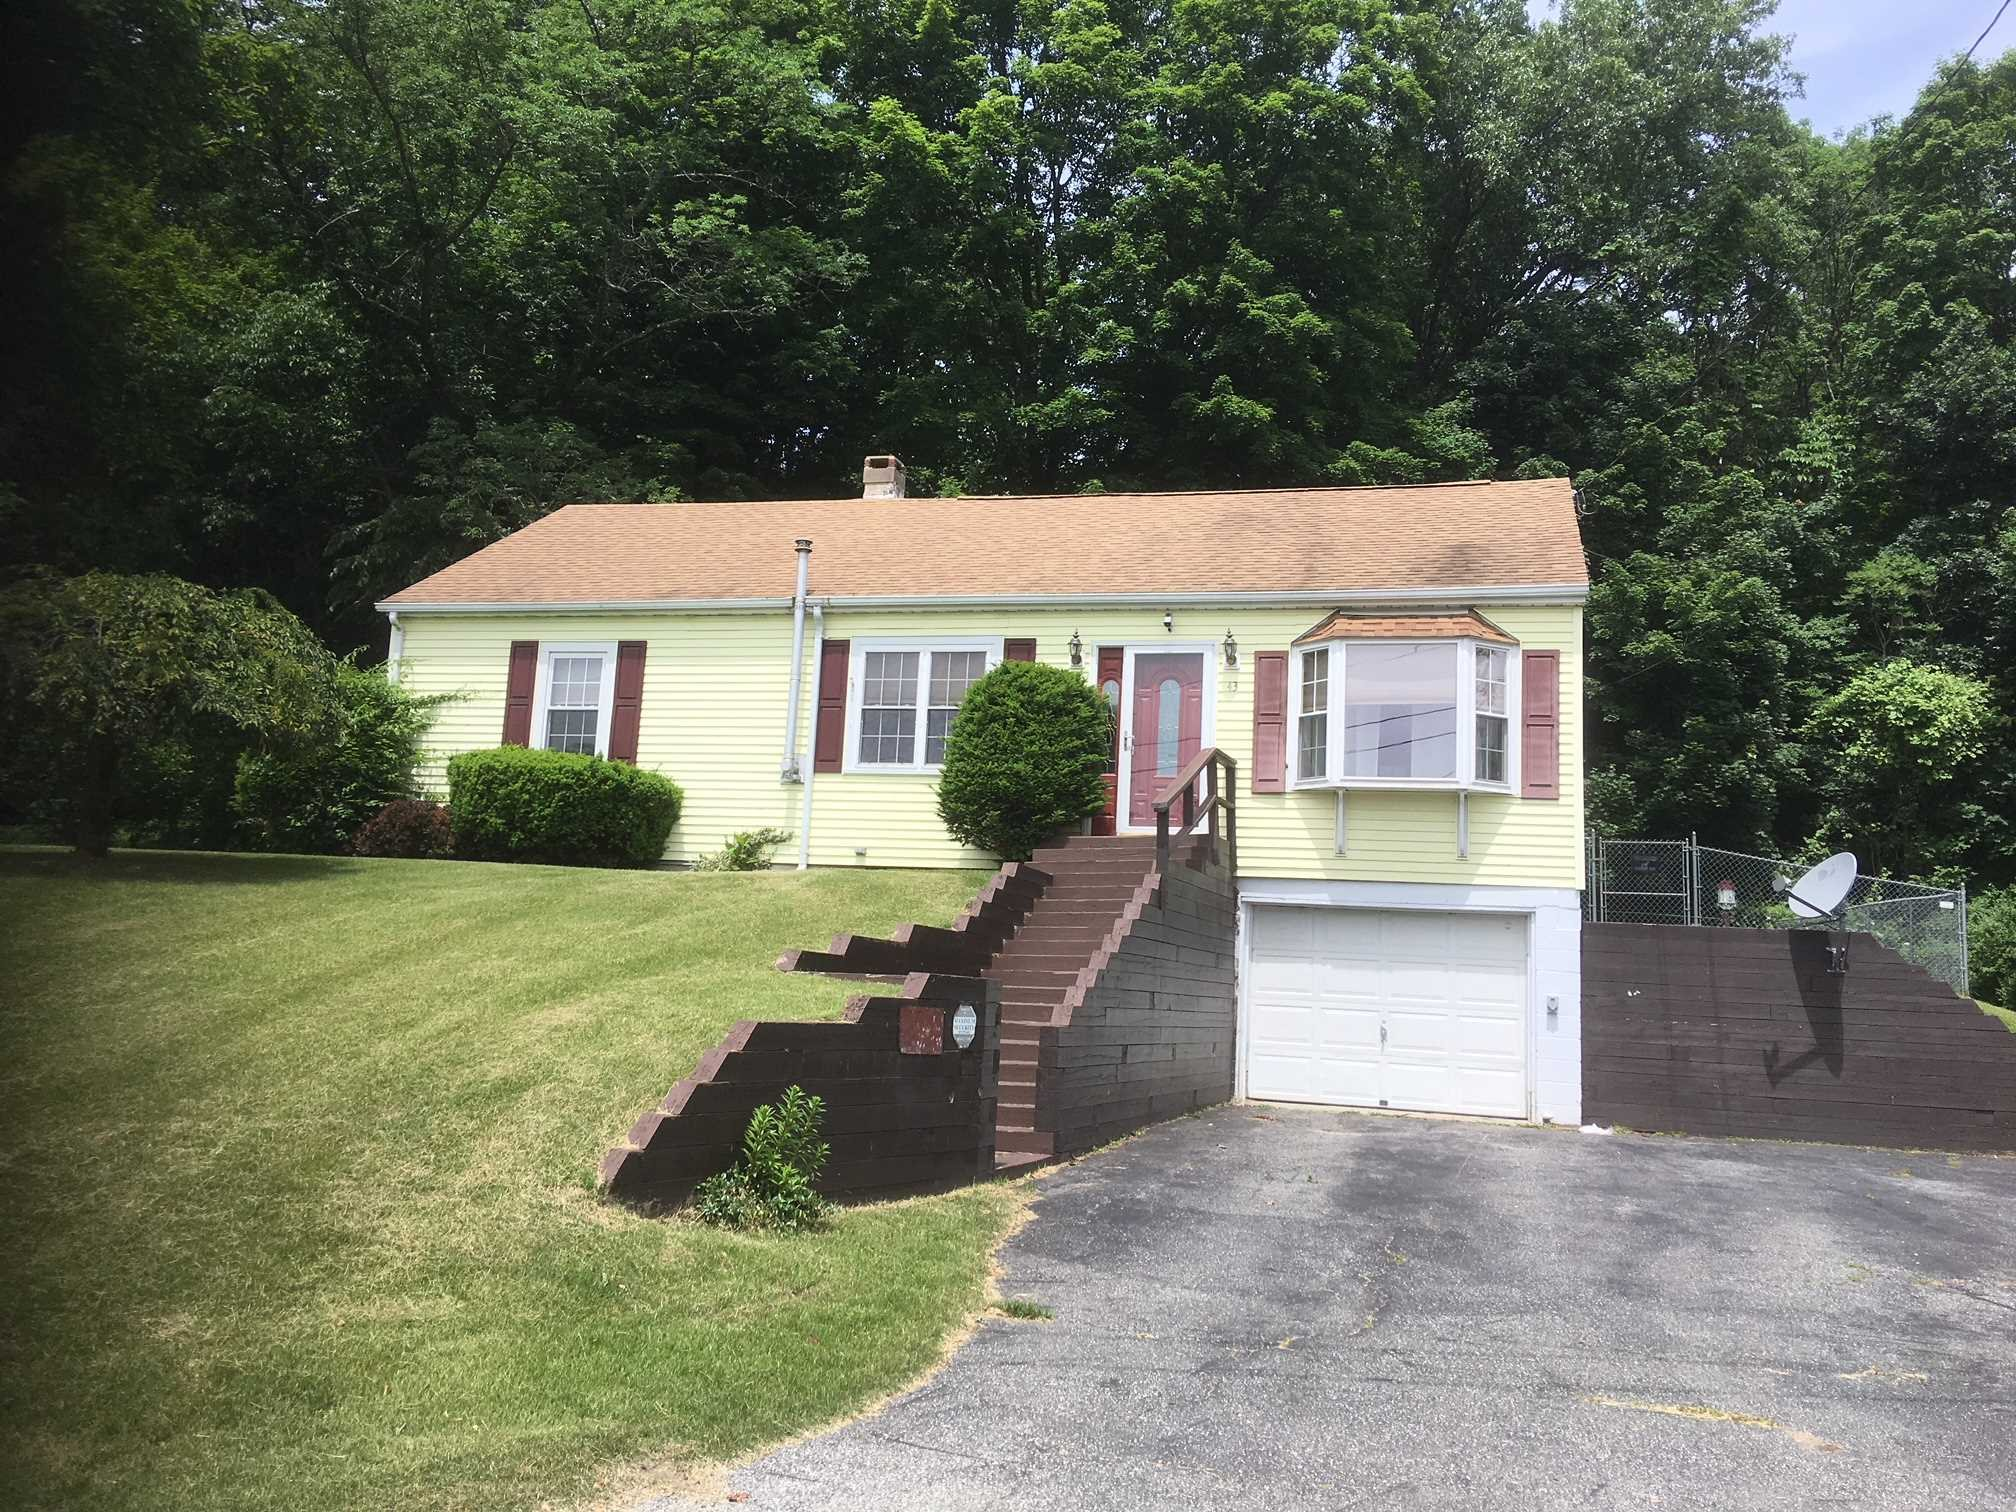 Single Family Home for Sale at 43 MAY LANE 43 MAY LANE Amenia, New York 12522 United States